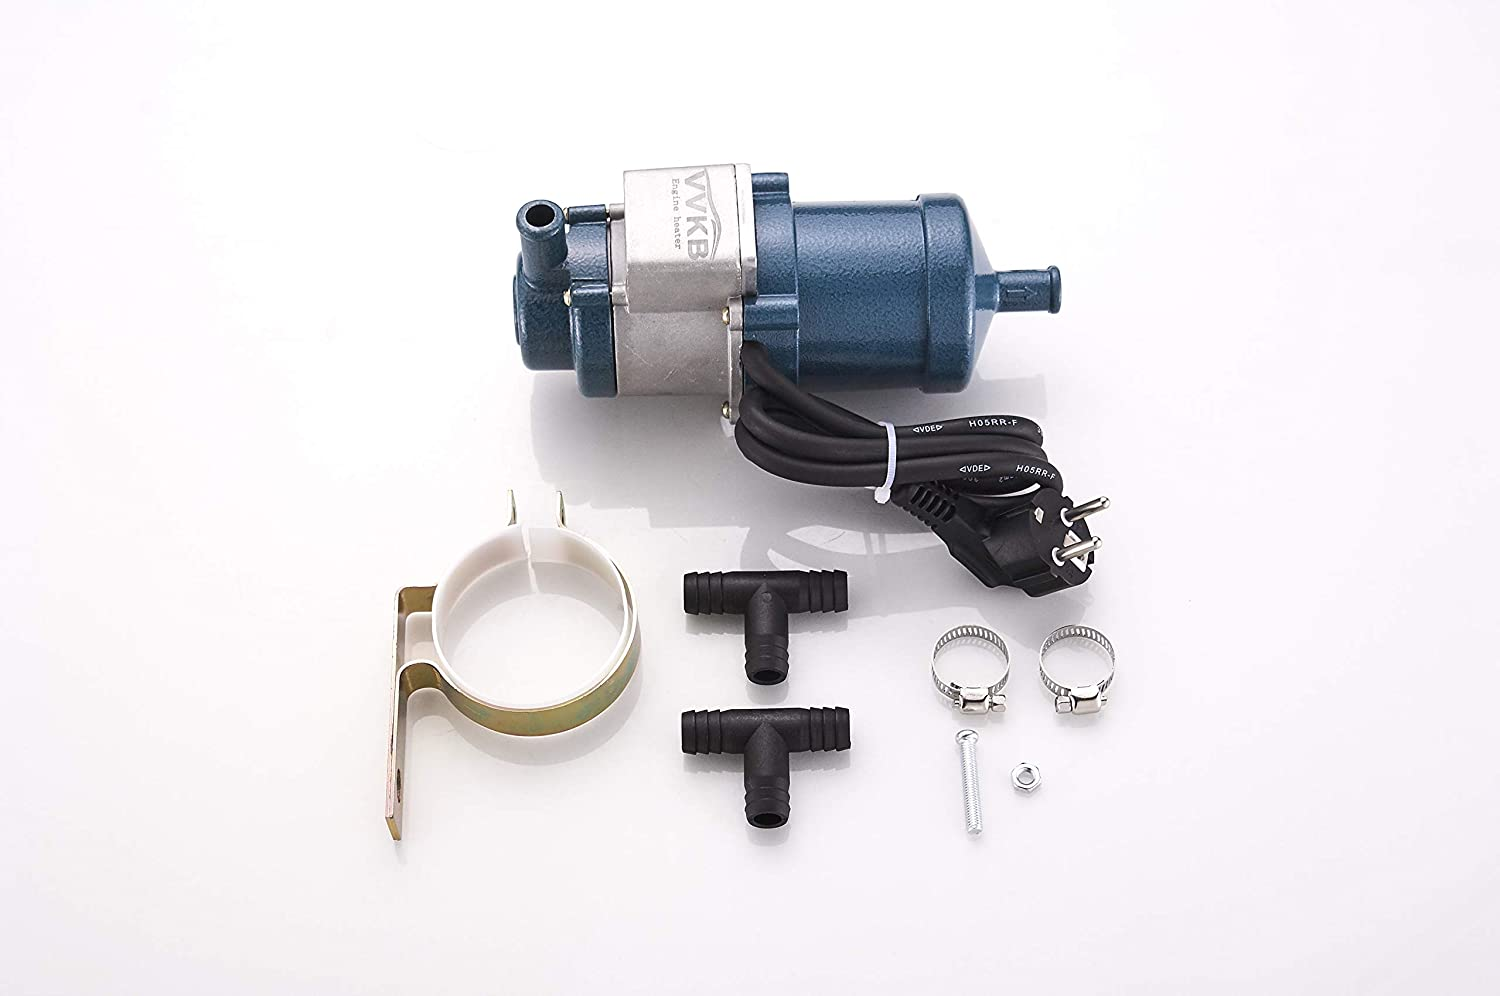 VVKB Engine Heater 110 Volts 1000w Titan-P5 with Thermostats and Built-in Water Pump TUV CE FCC ROHS